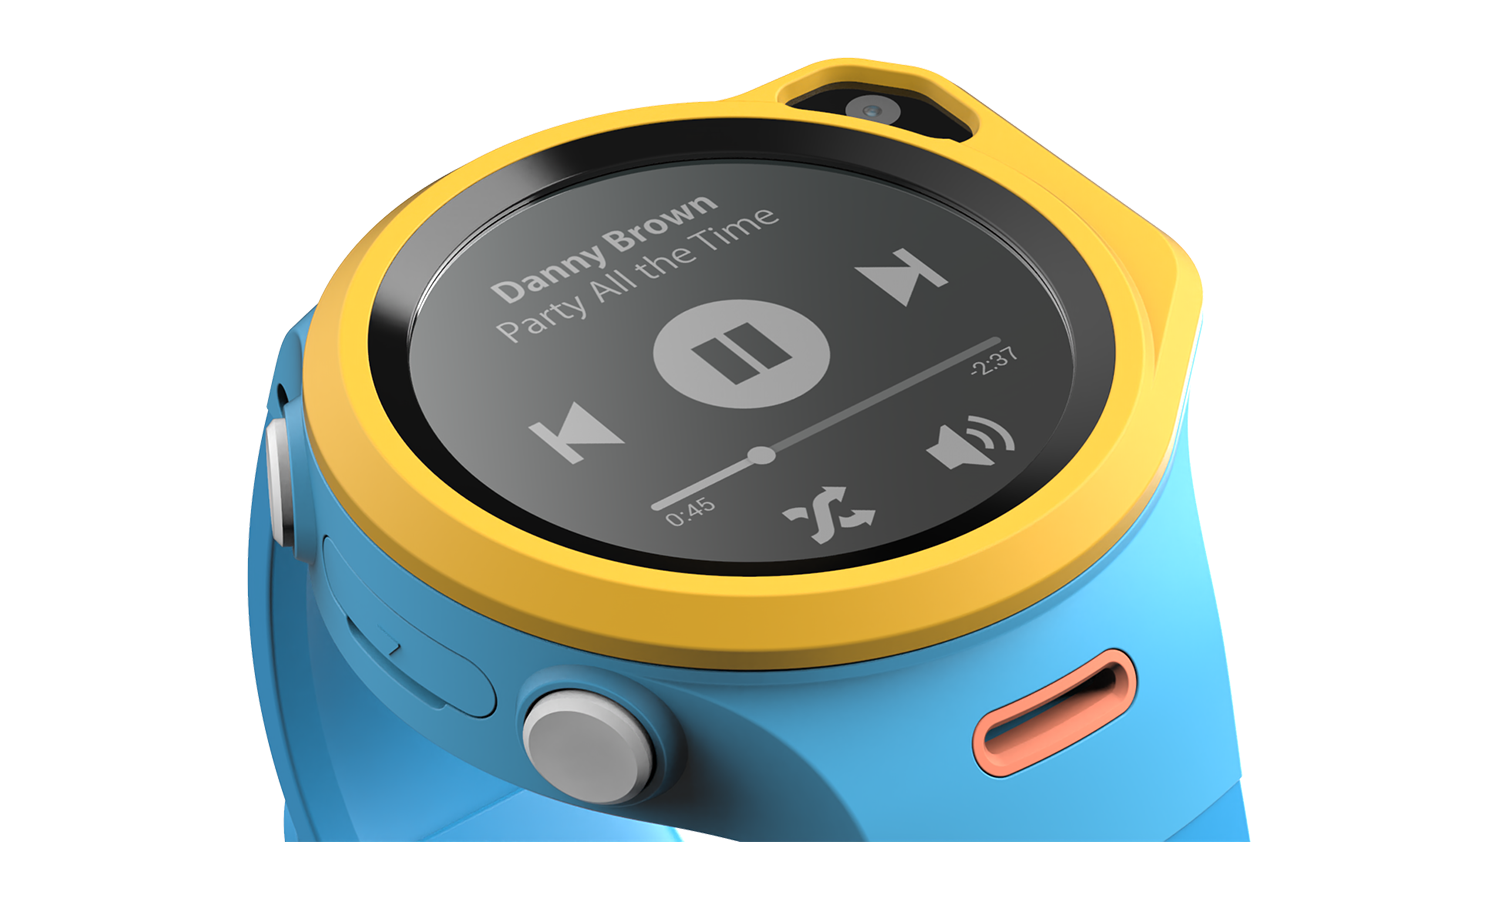 myFirst Fone R1 - Smart watch phone for kids with gps tracker and MP3 Player